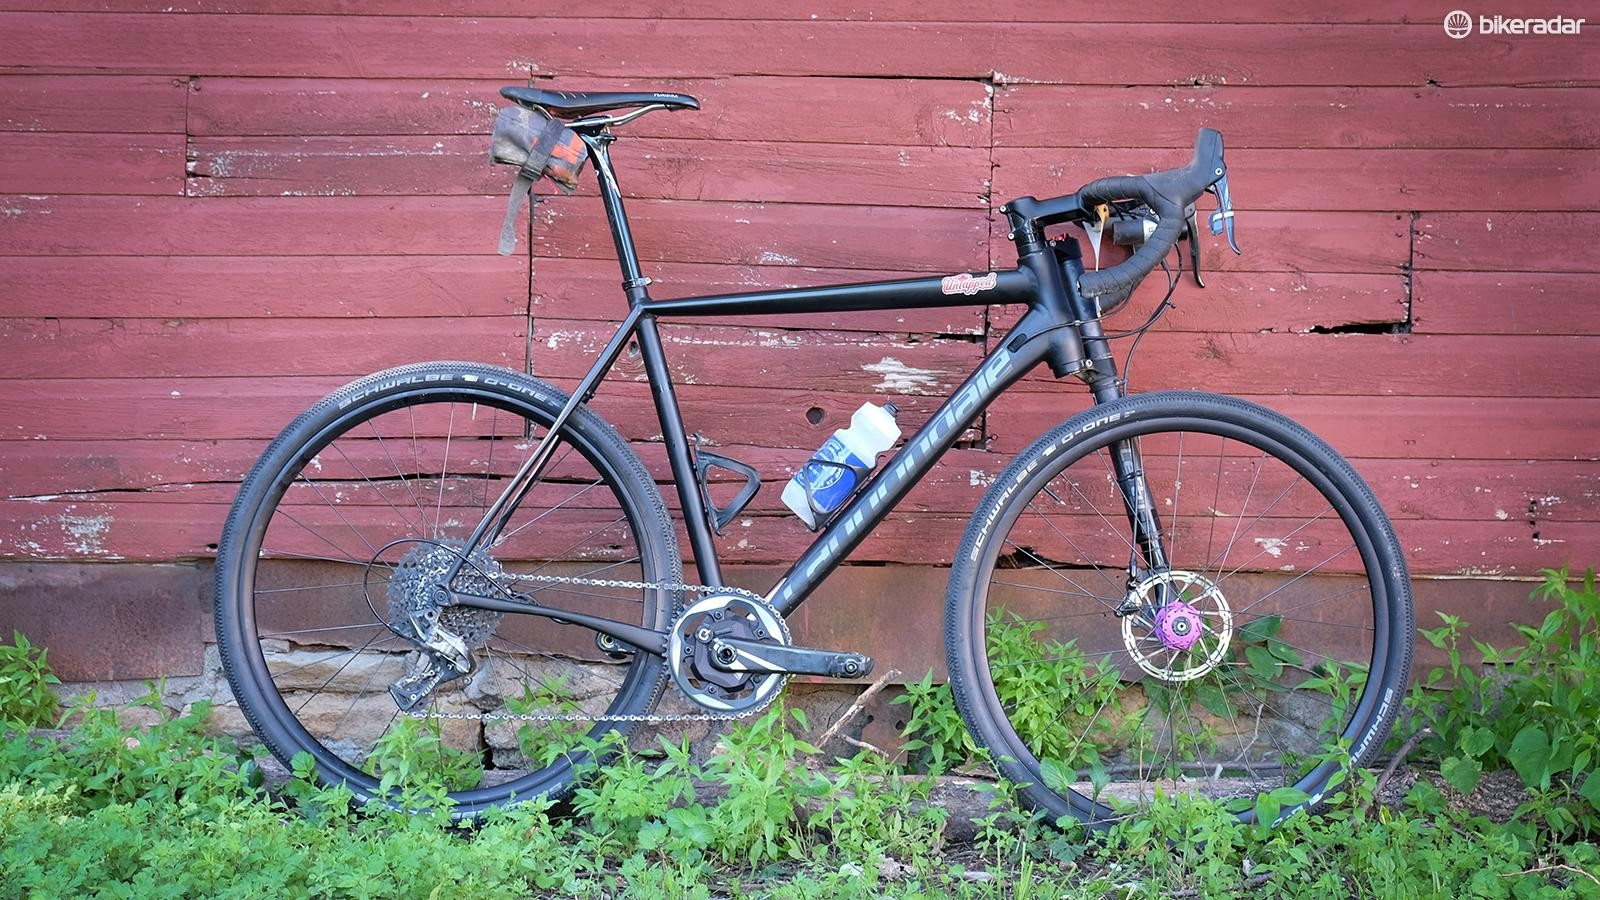 Ted King's Cannondale Slate was the fastest bike at this year's Dirty Kanza 200